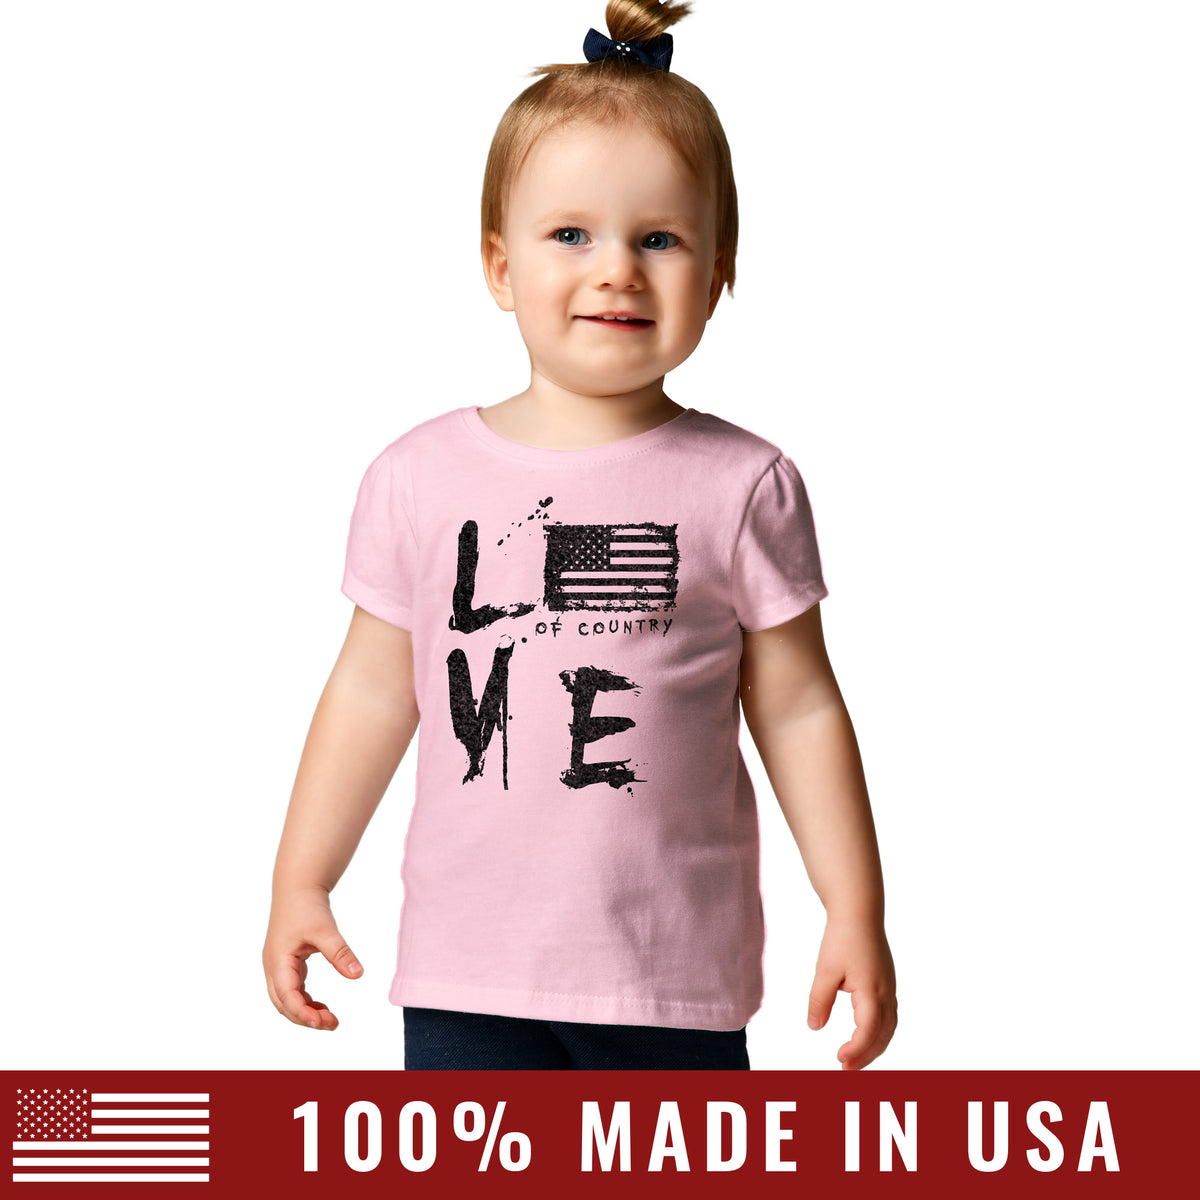 Toddler Love of Country Tee - Pink – Grunt Style c6da53a1b